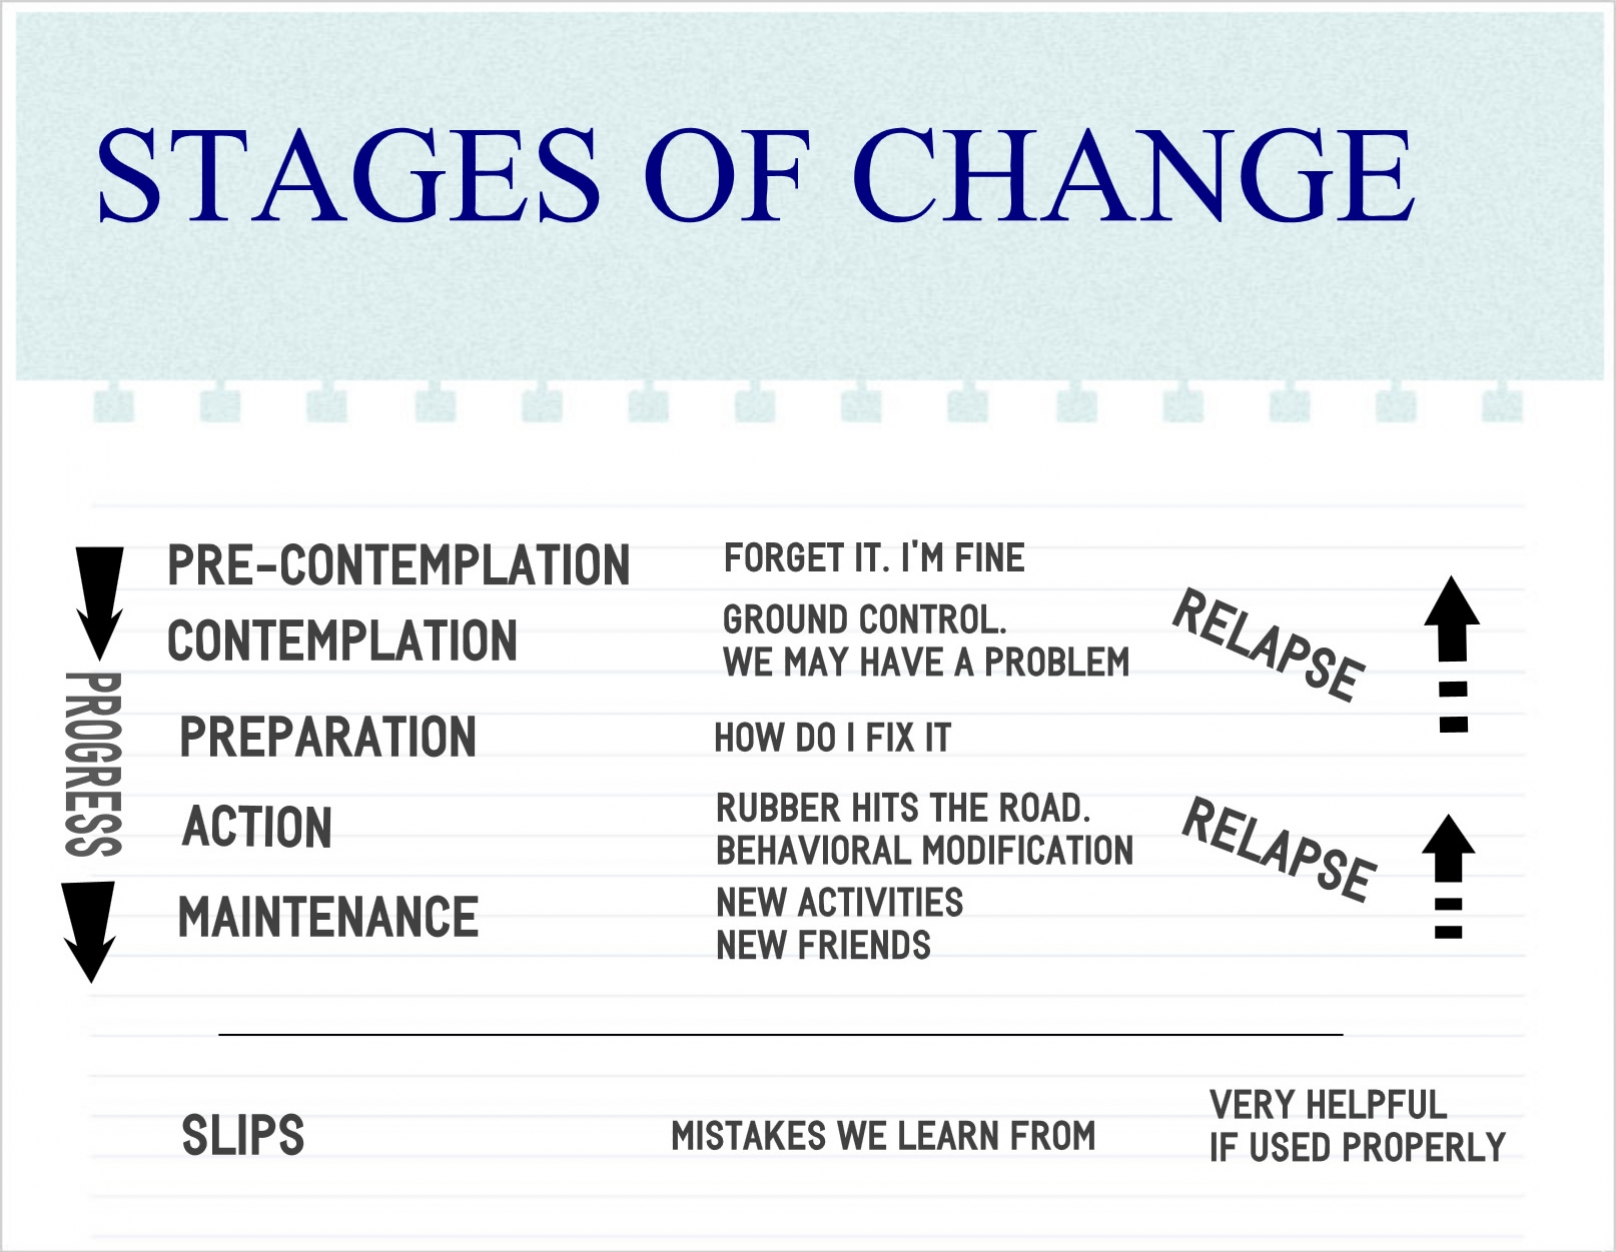 Worksheets Stages Of Change Worksheet stages of change model worksheet delibertad sharebrowse